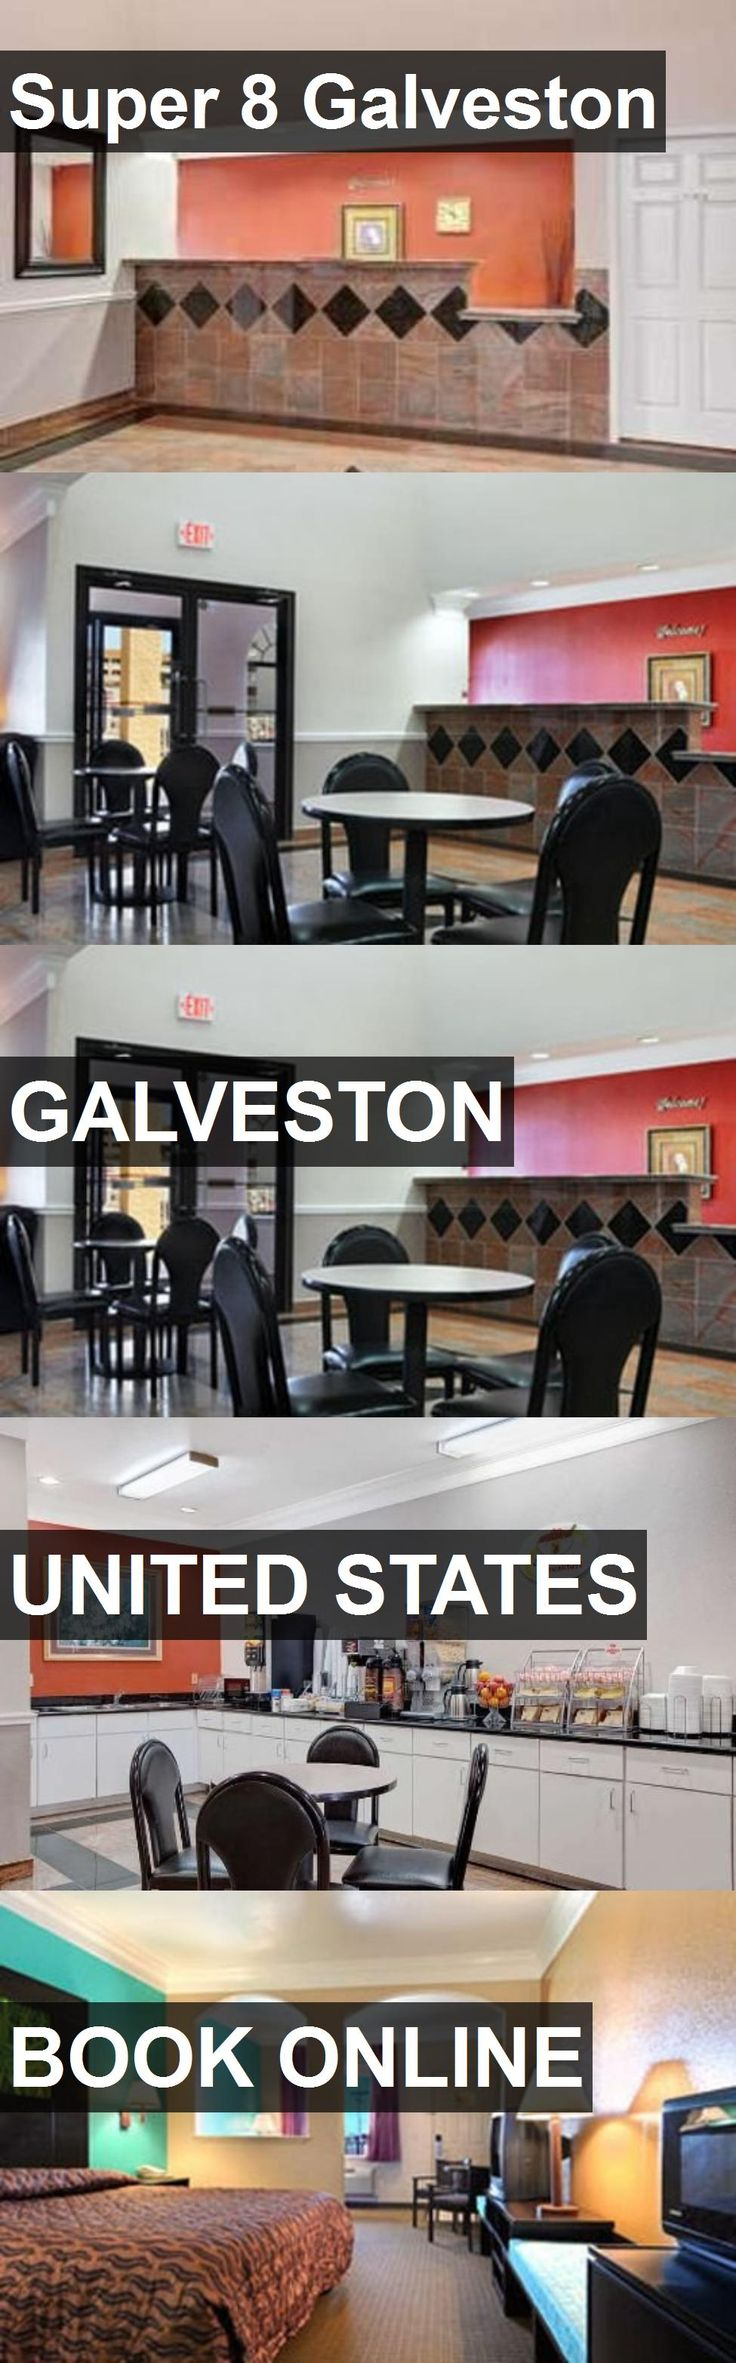 Hotel Super 8 Galveston in Galveston, United States. For more information, photos, reviews and best prices please follow the link. #UnitedStates #Galveston #travel #vacation #hotel